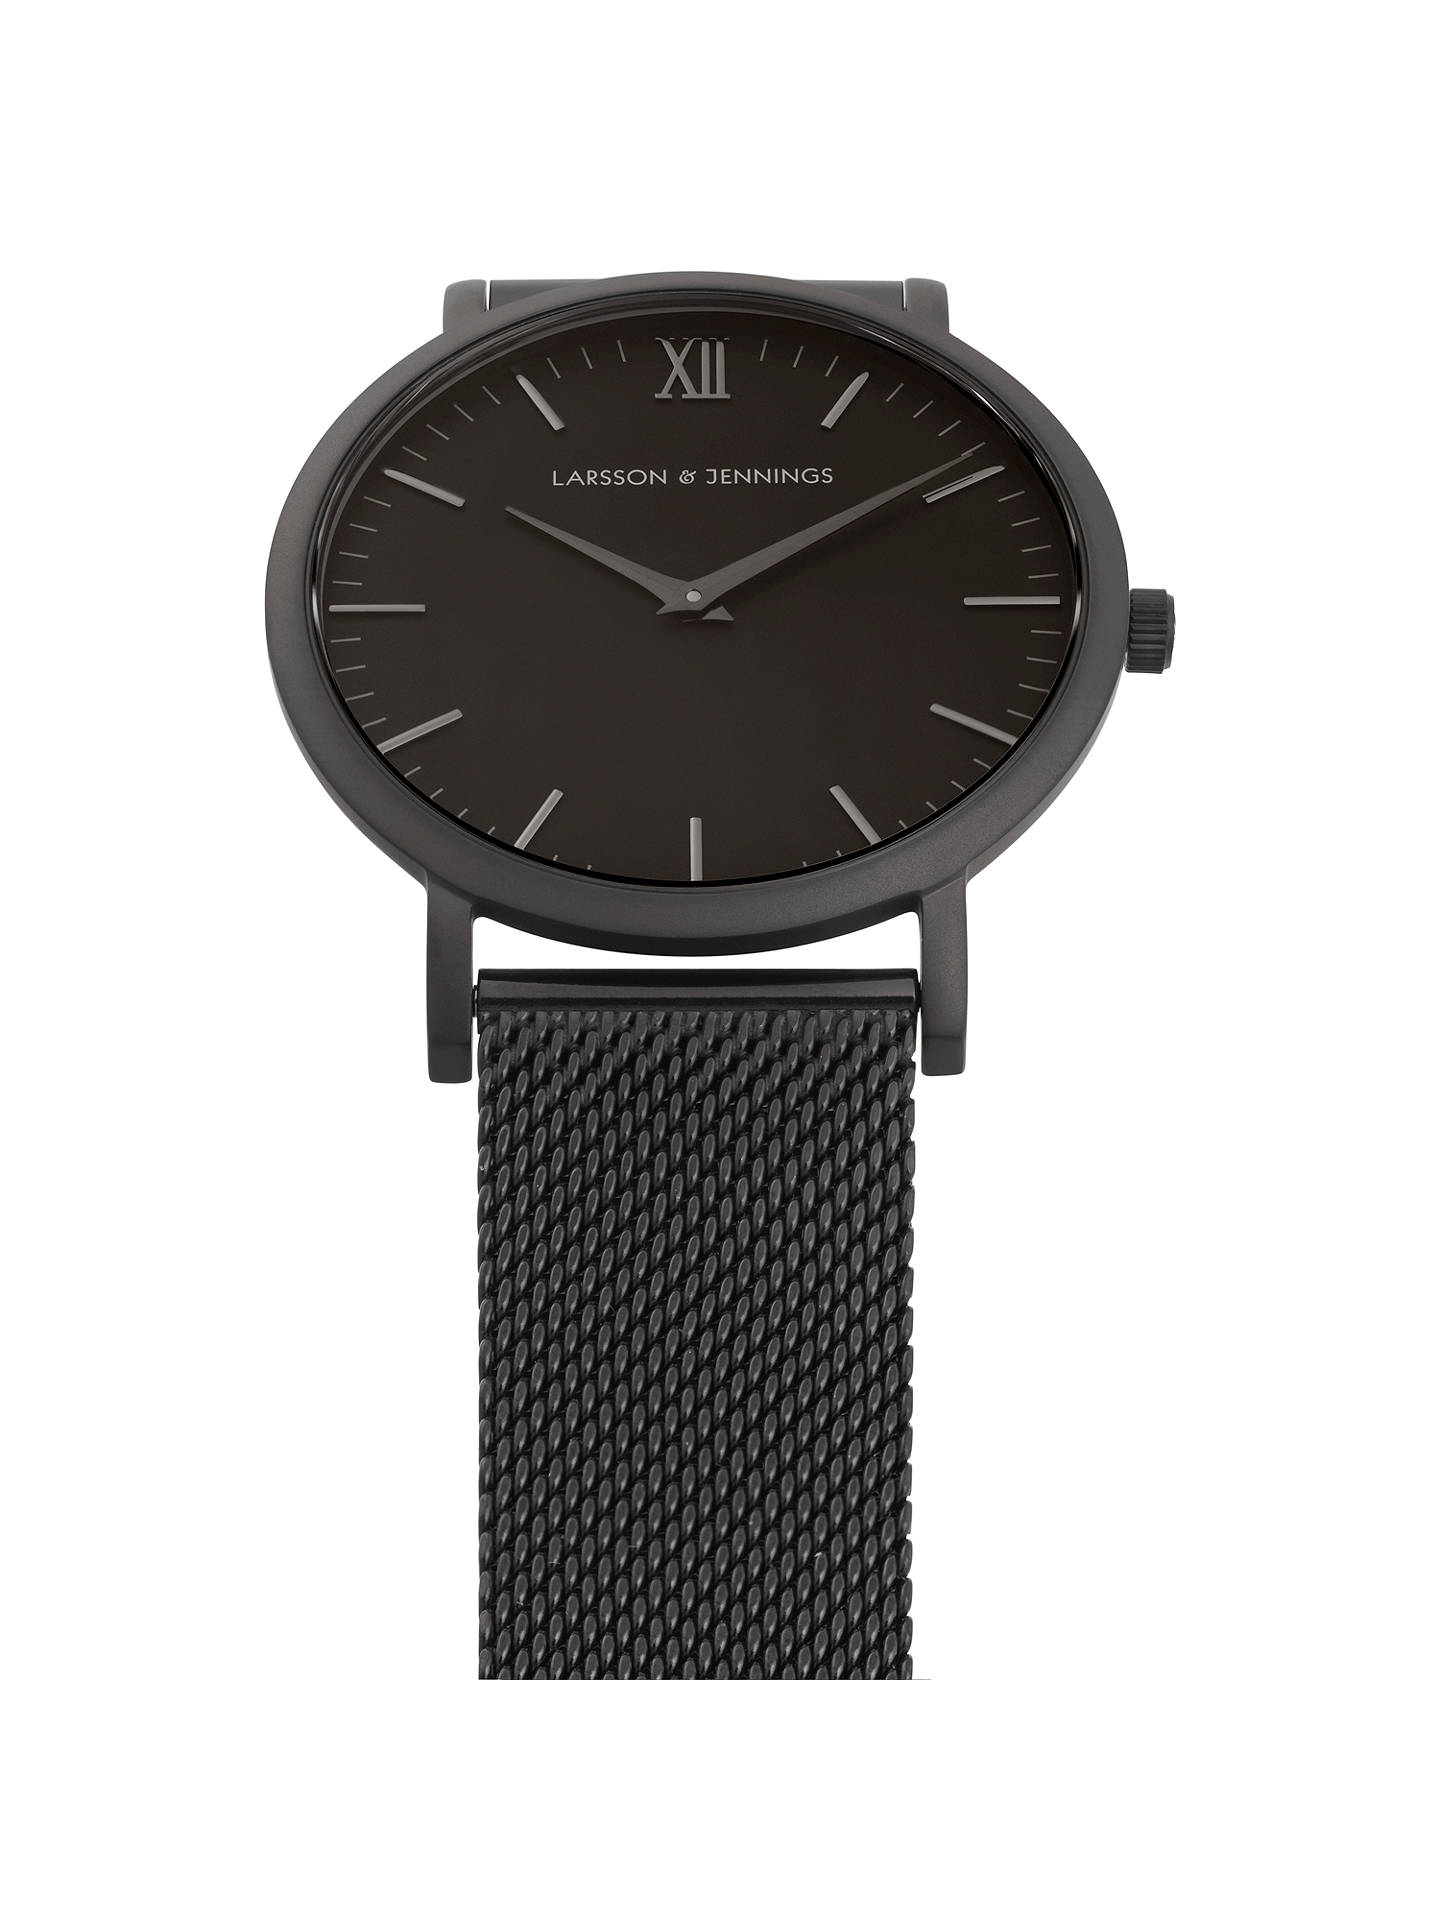 BuyLarsson & Jennings LJ-W-CMBCK-O-BB Unisex Lugano Bracelet Strap Watch, Black Online at johnlewis.com